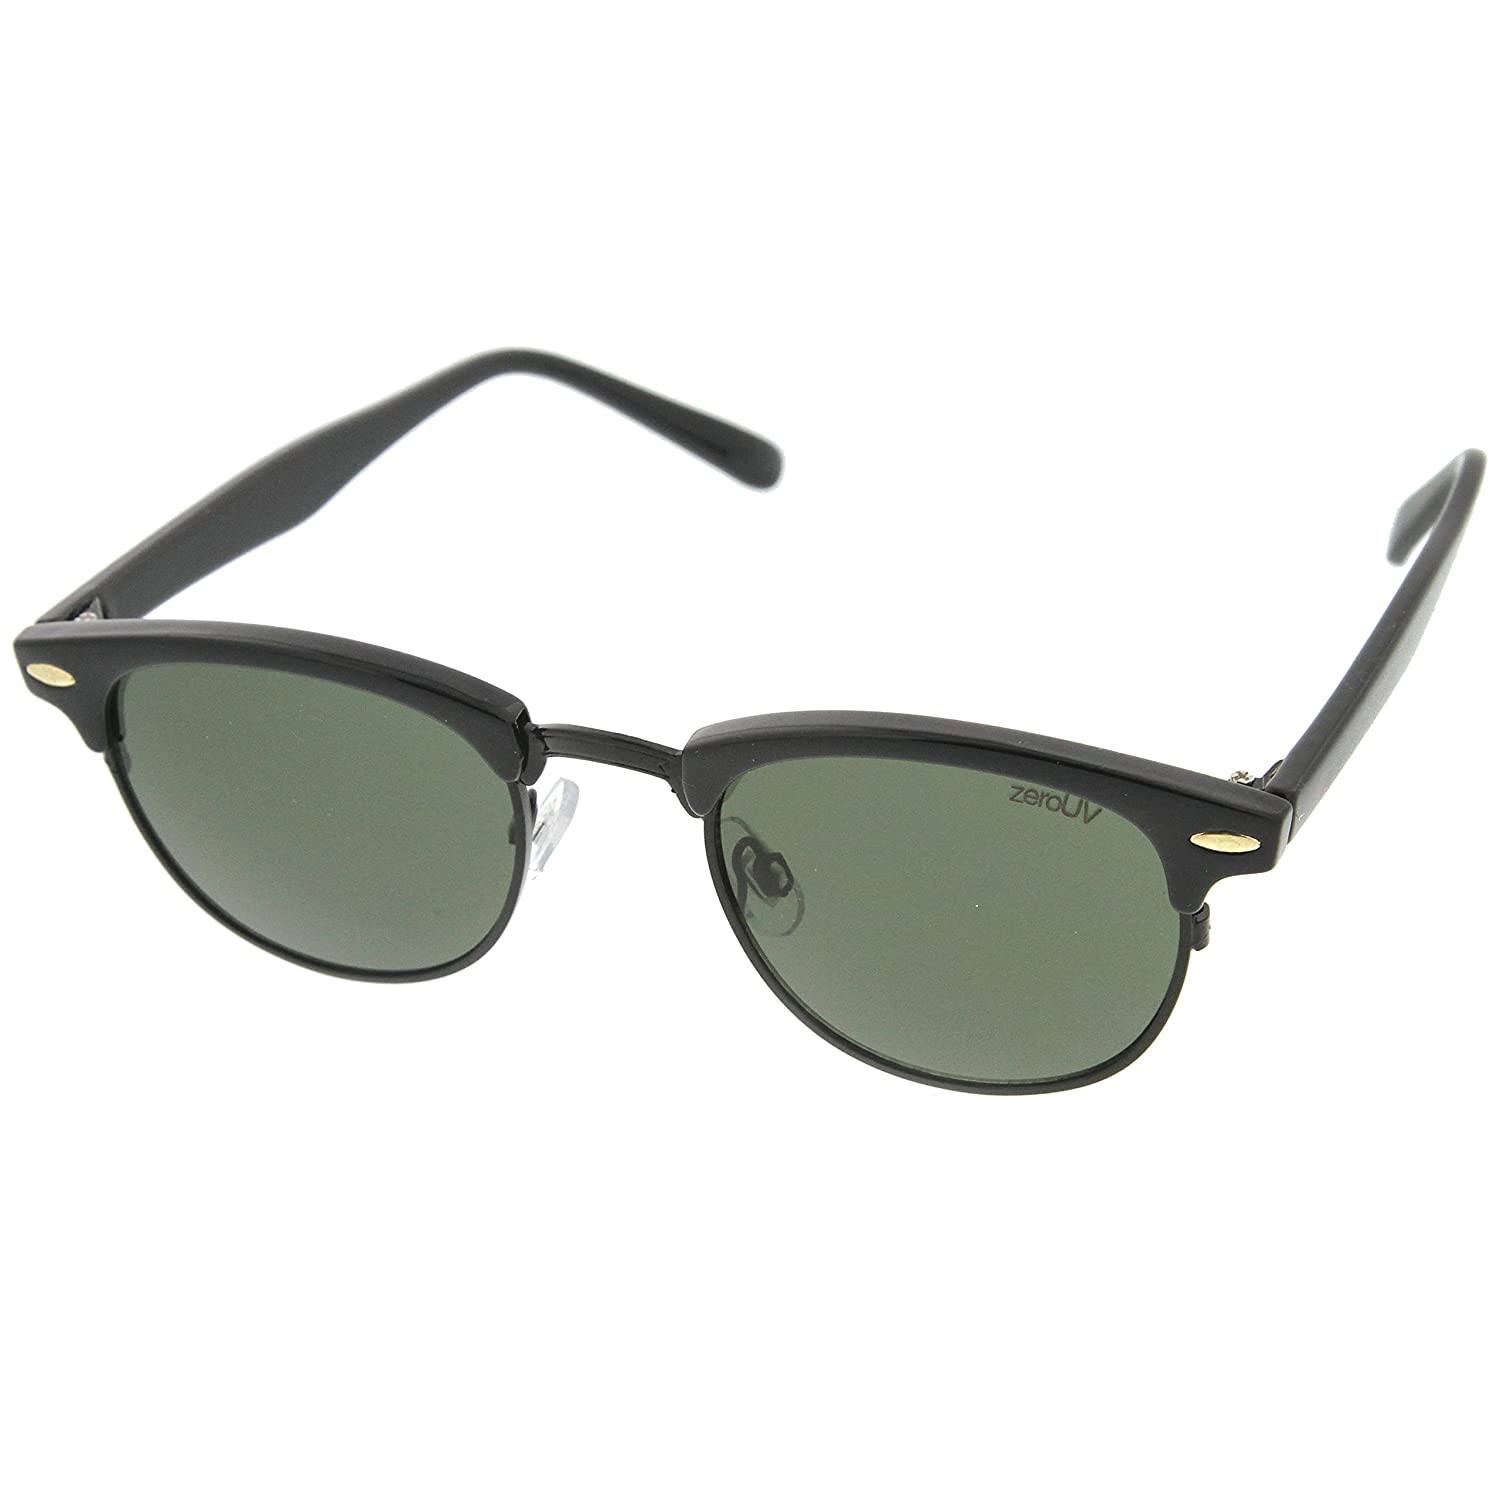 7b2951080e Amazon.com  Vintage Half Frame Semi-Rimless Horn Rimmed Style Classic  Optical RX Sunglasses (2-Pack)  Shoes